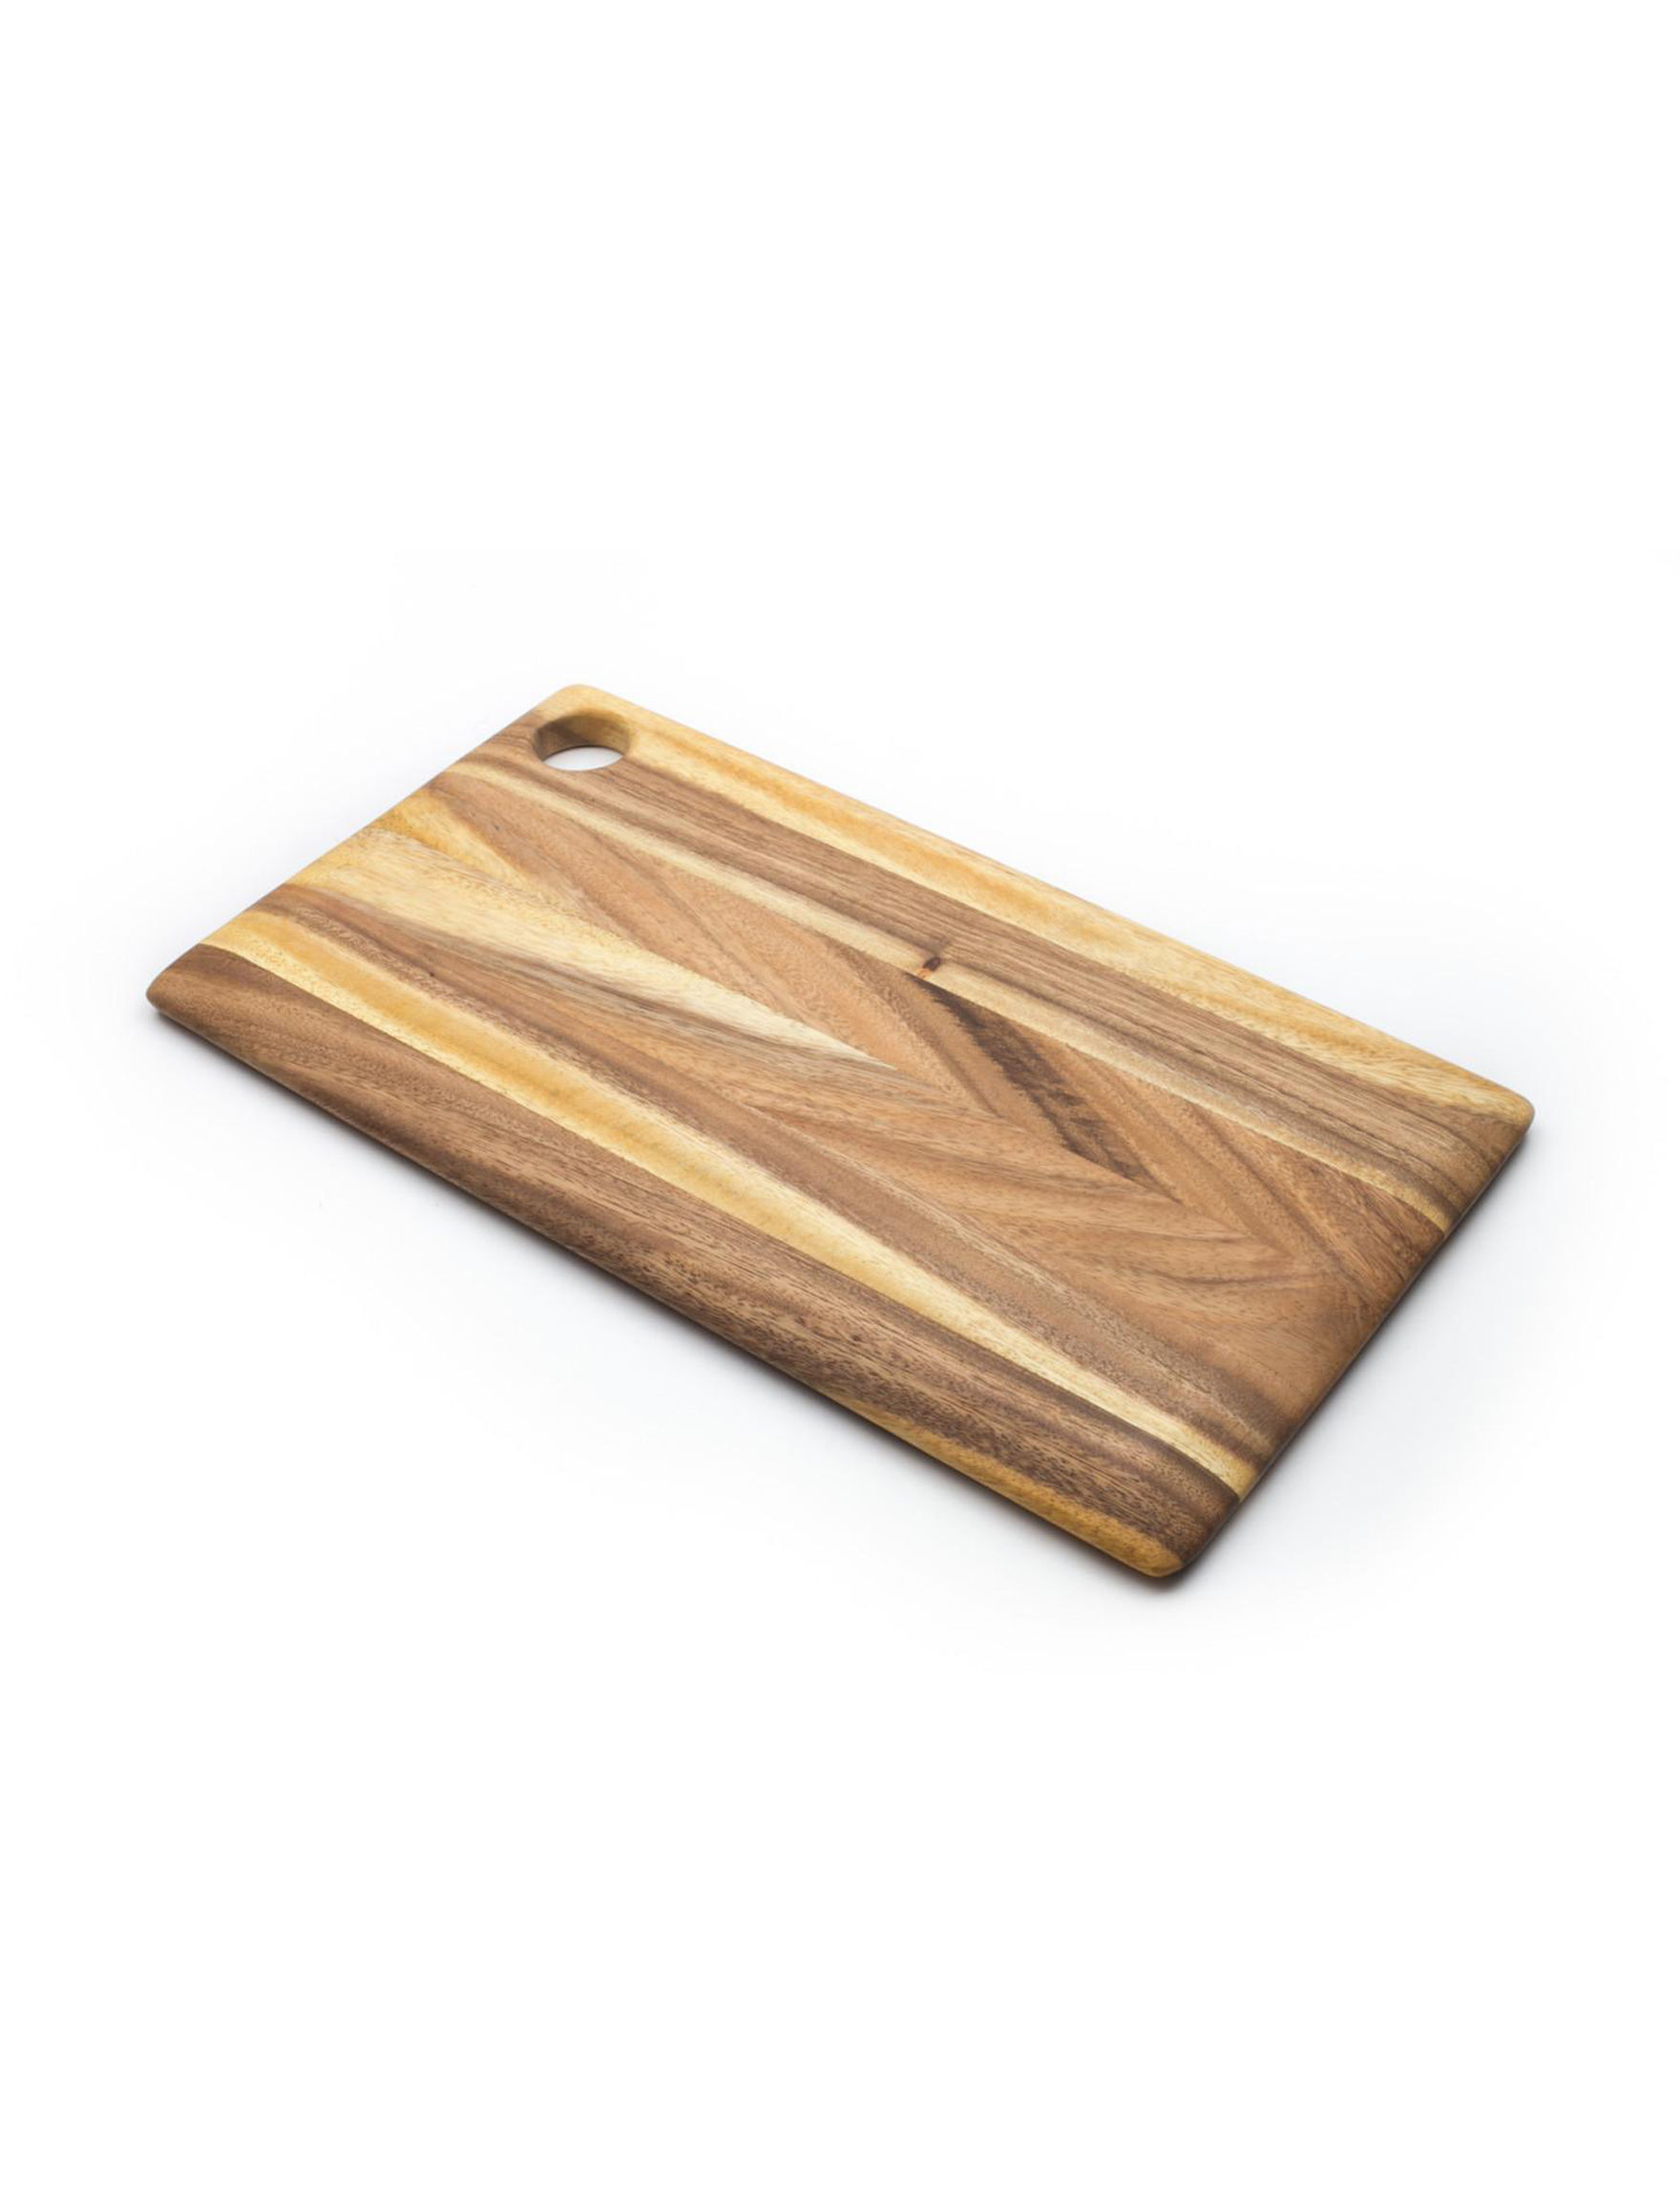 Ironwood Gourmet Wood Cutting Boards Prep & Tools